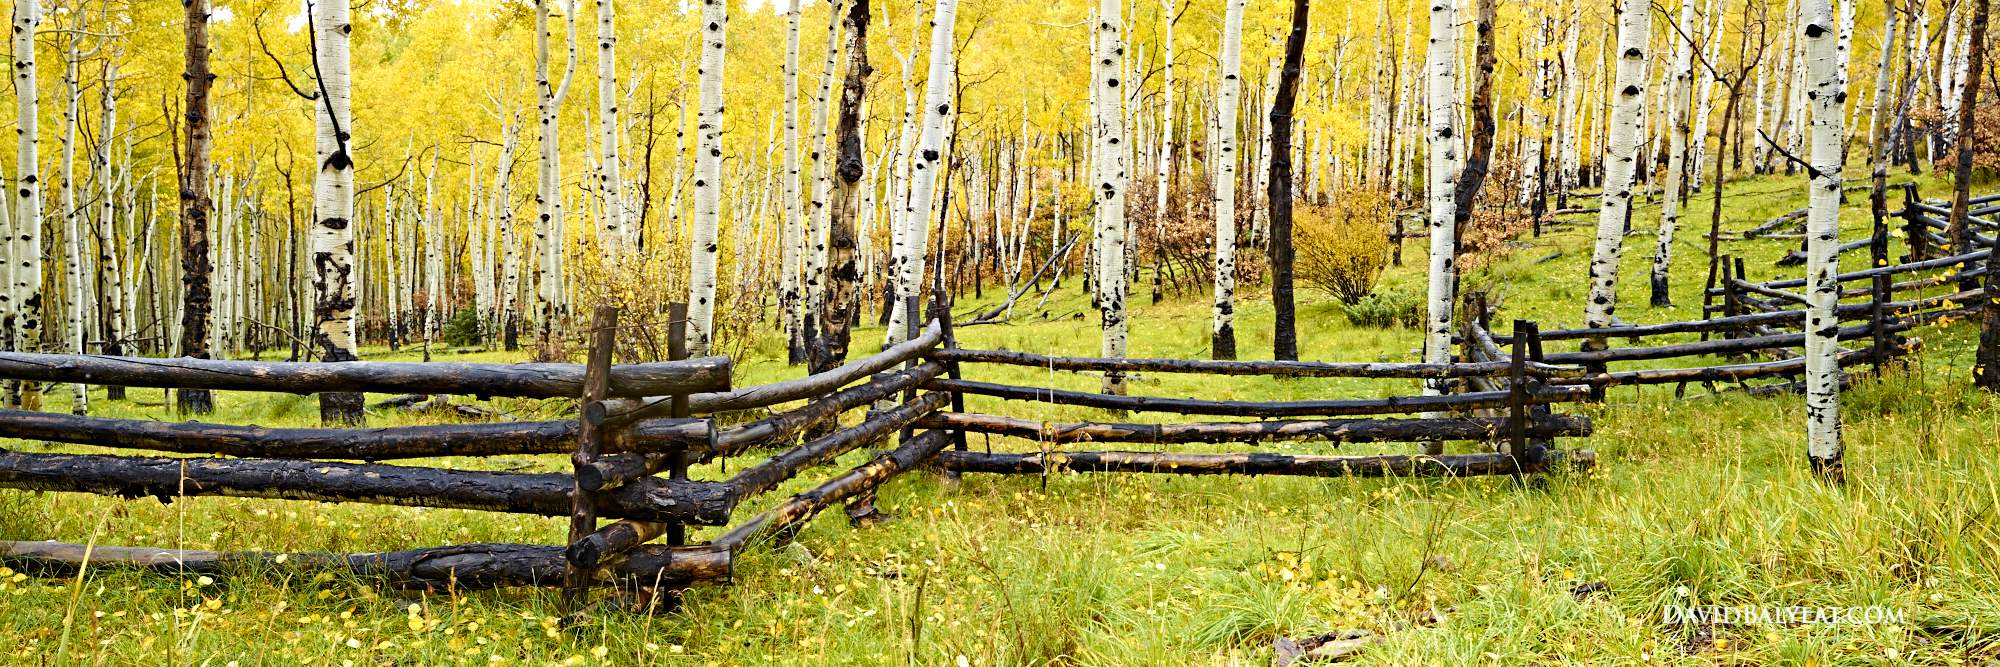 Aspen trees panoramic autumn fall foliage rustic fence Telluride Colorado high-definition HD professional landscape photography